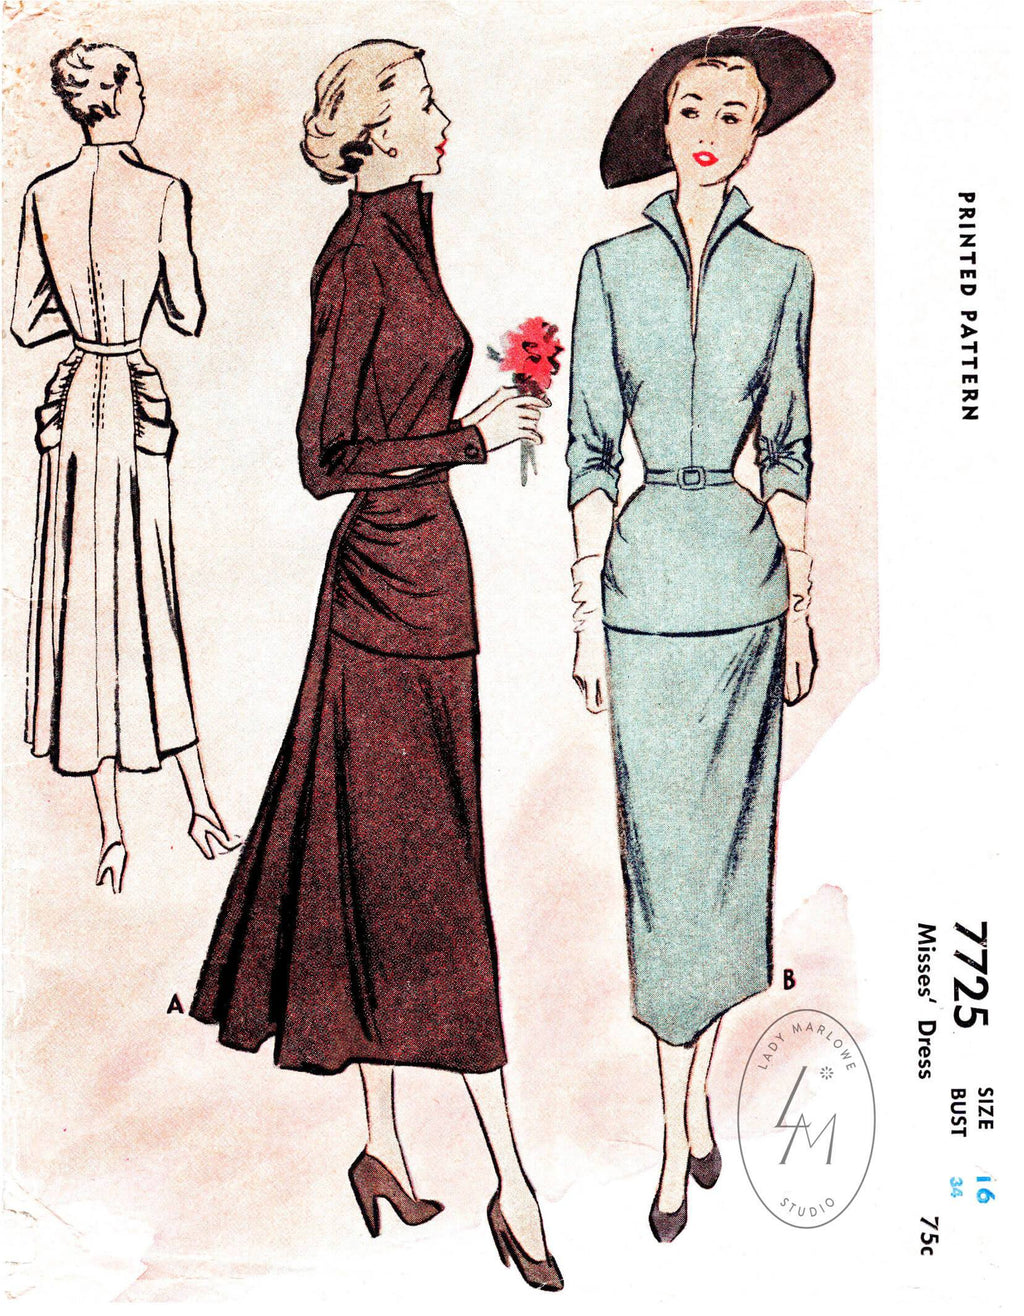 McCall 7725 1950s sewing pattern 1950 cocktail dress